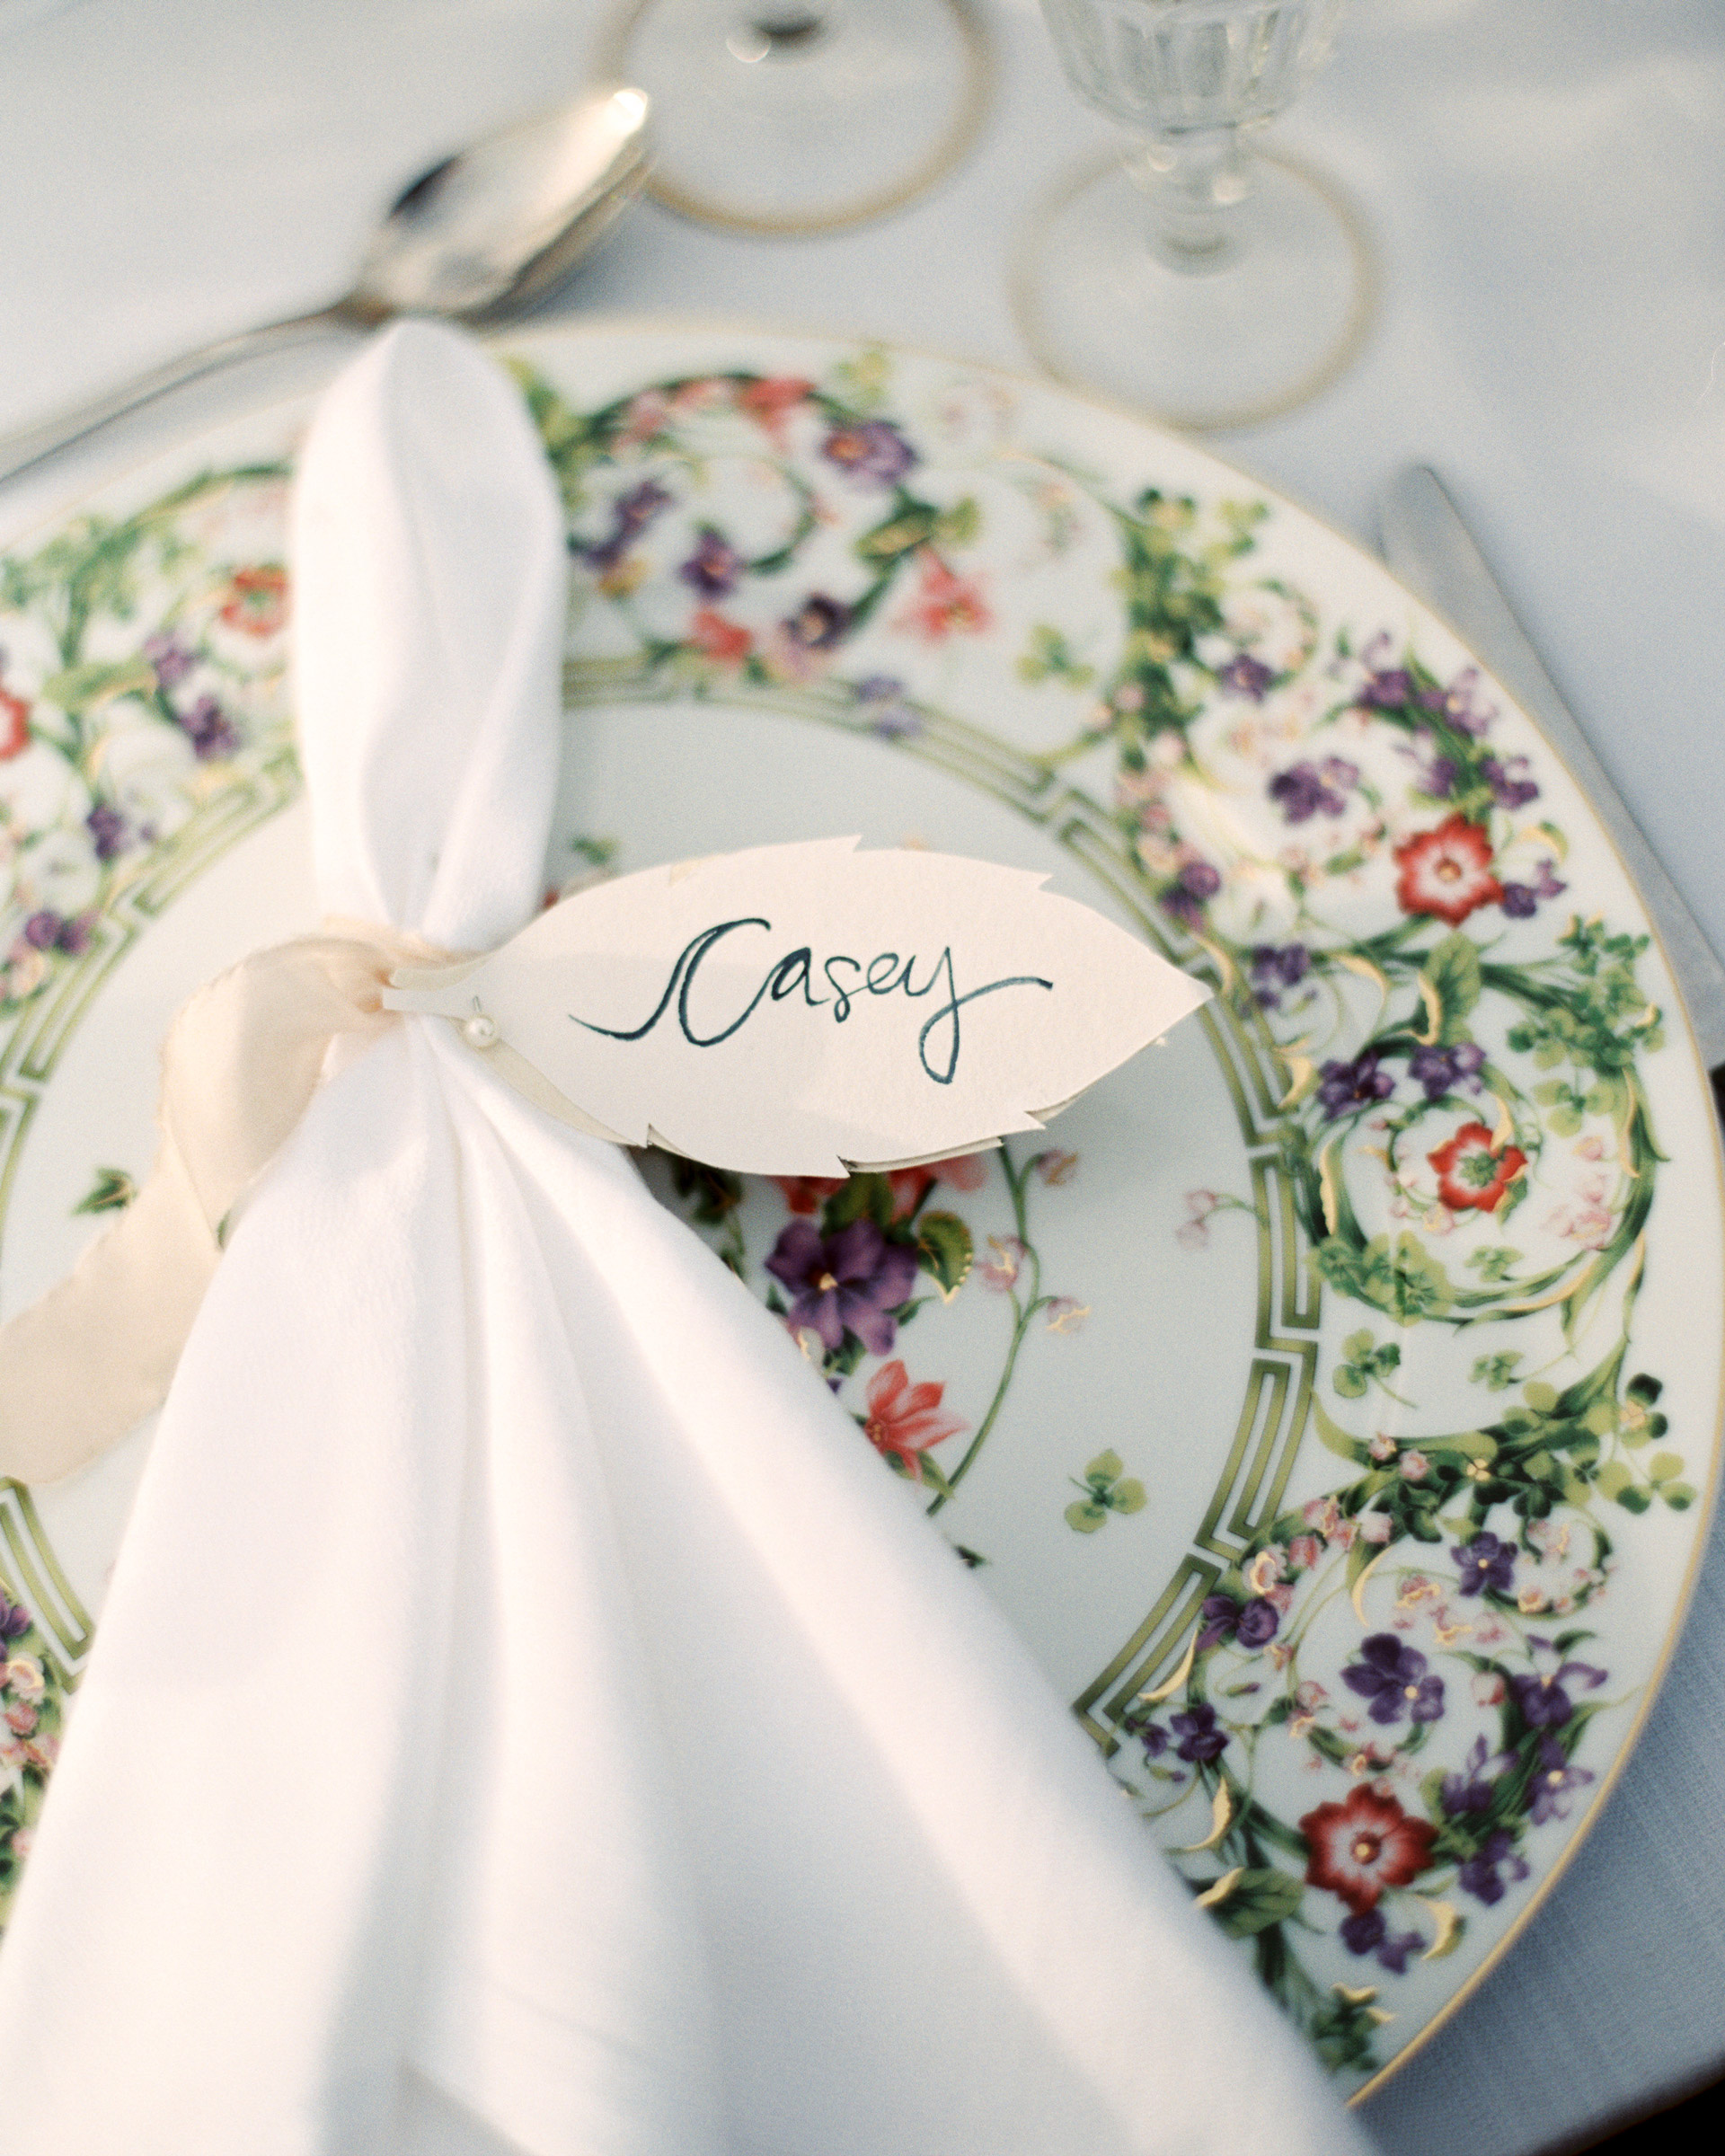 christine-dagan-wedding-placesetting-4319_01-s113011-0616.jpg